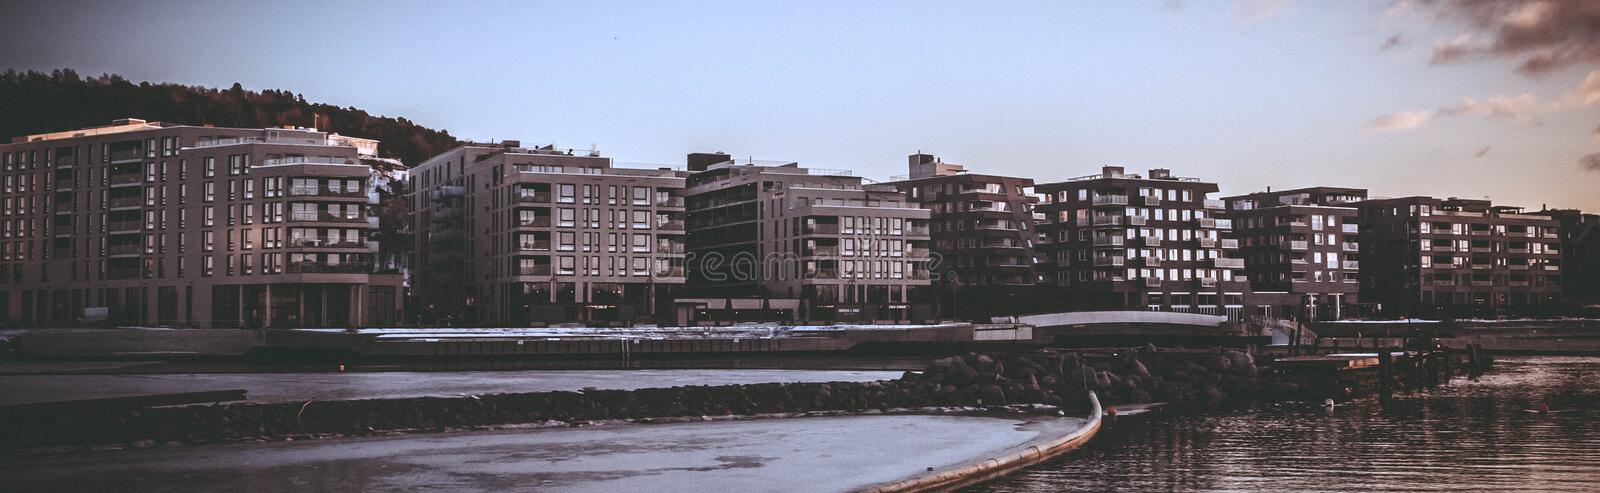 Landscape Photography of Body of Water Beside High Rise Building during Golden Hour stock images